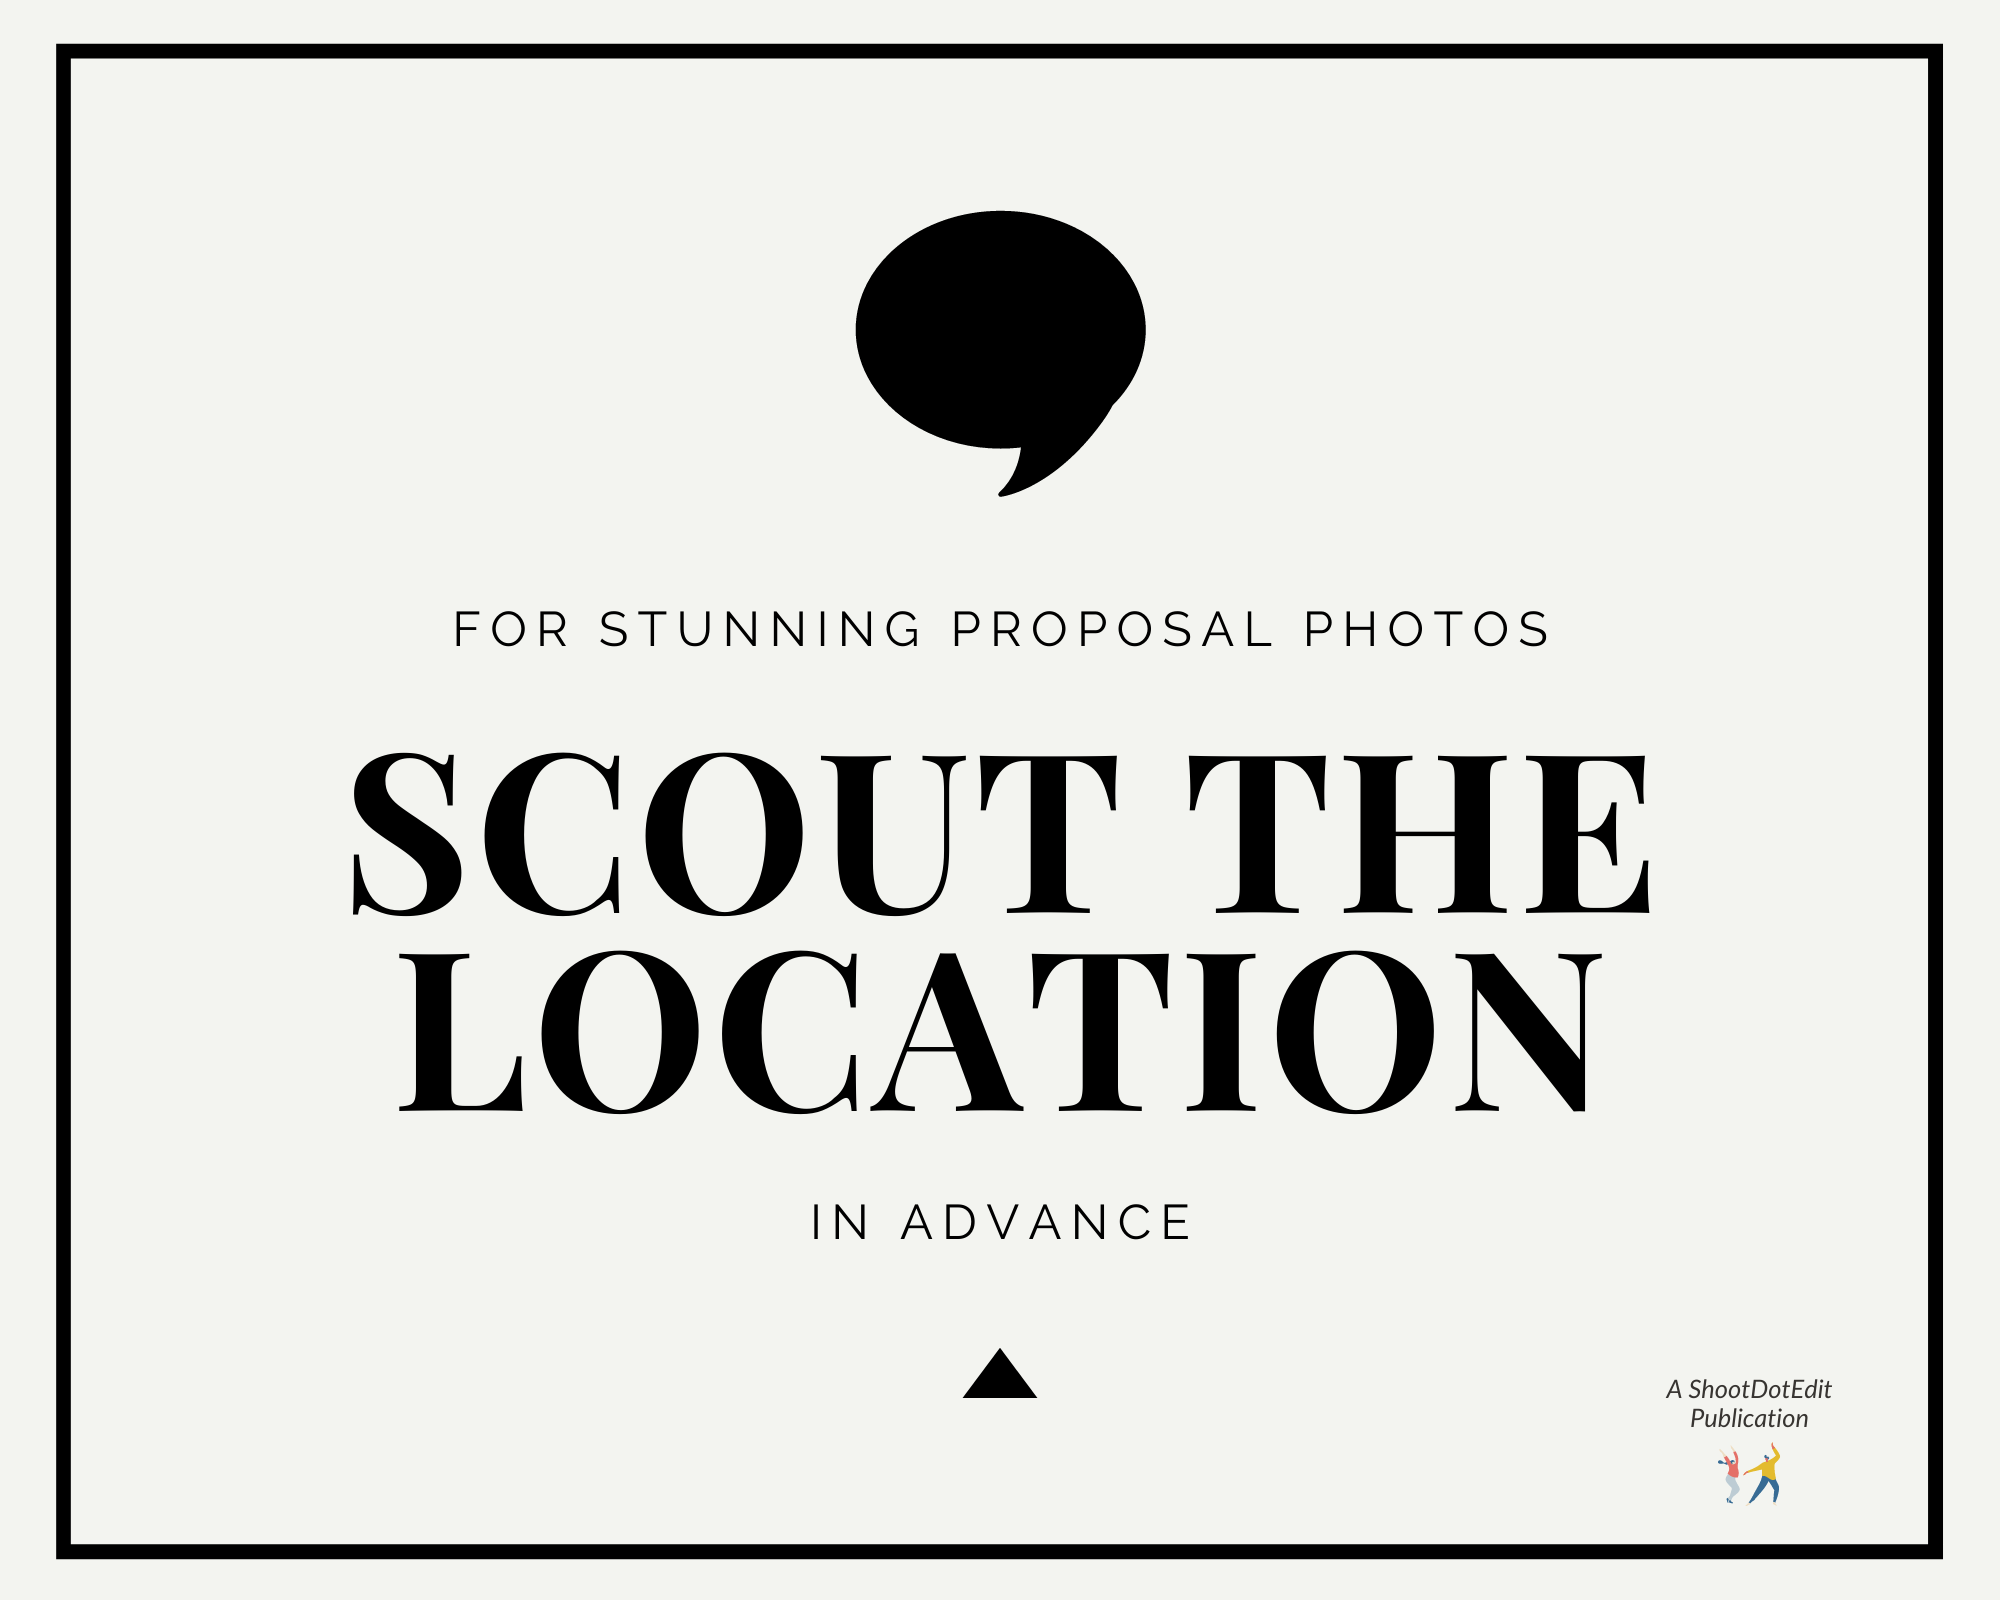 Graphic displaying for stunning proposal photos - scout the location in advance